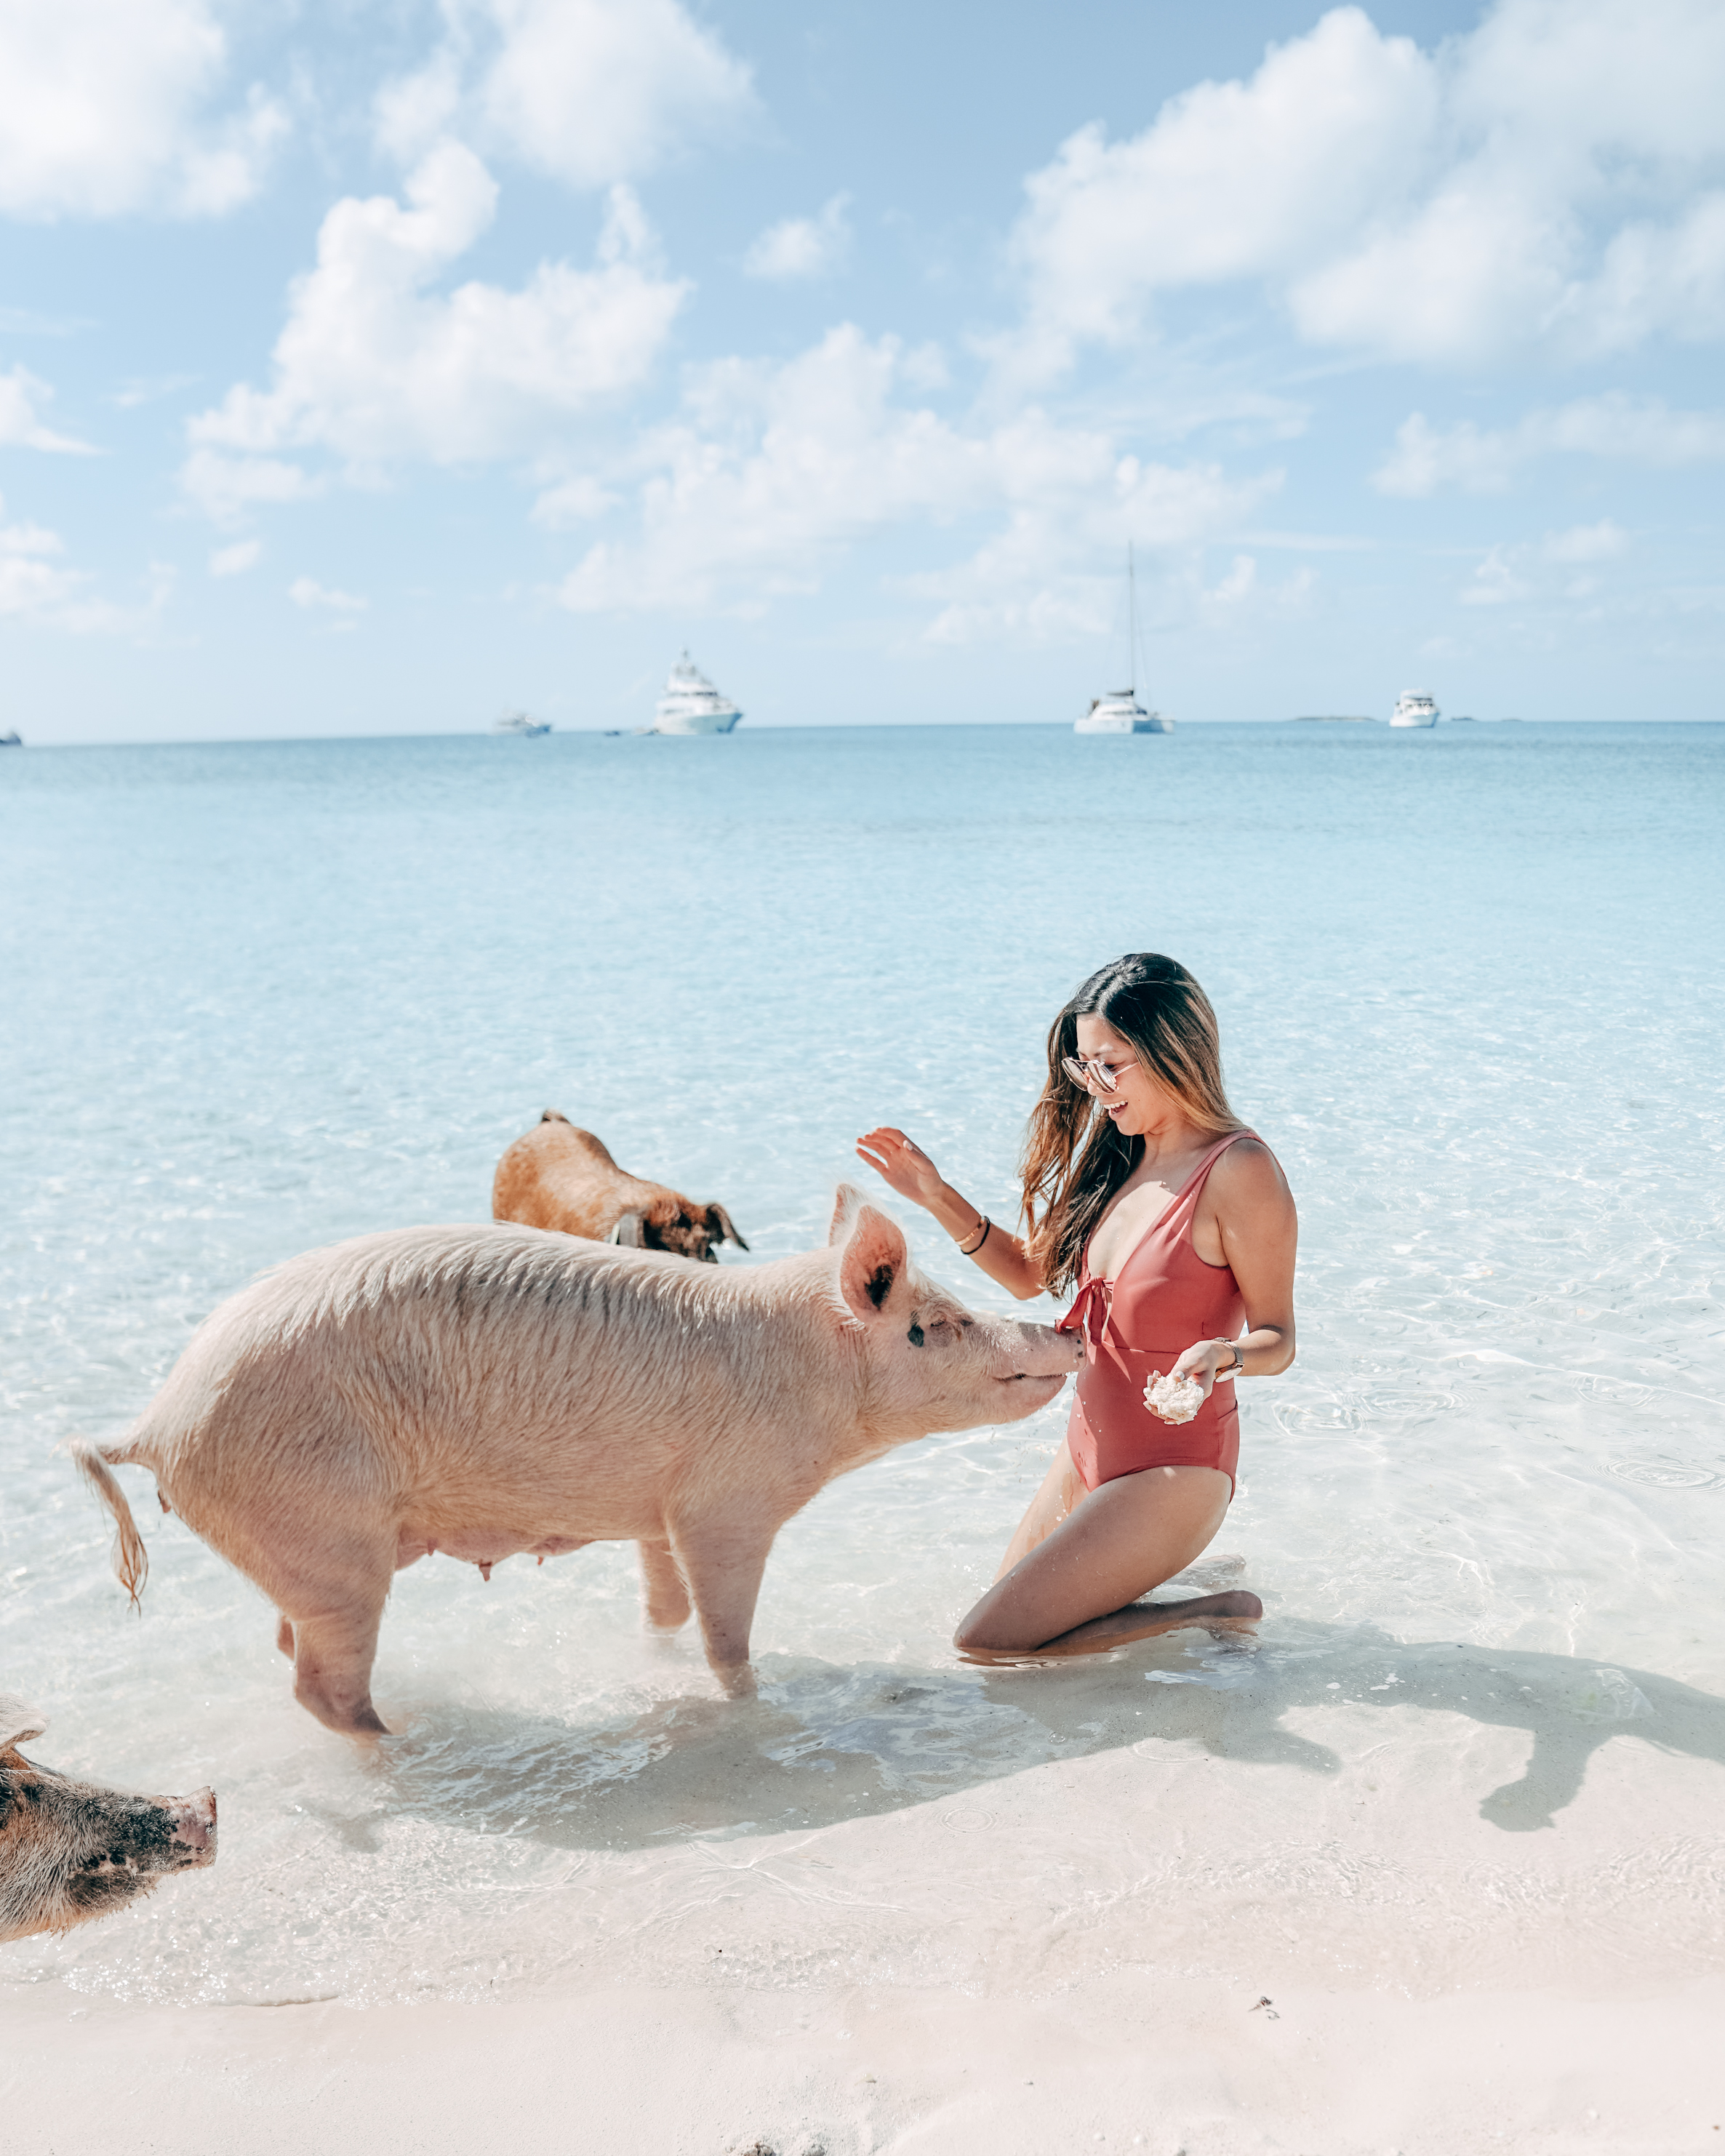 Bucket list experiences in Exuma - swimming pigs